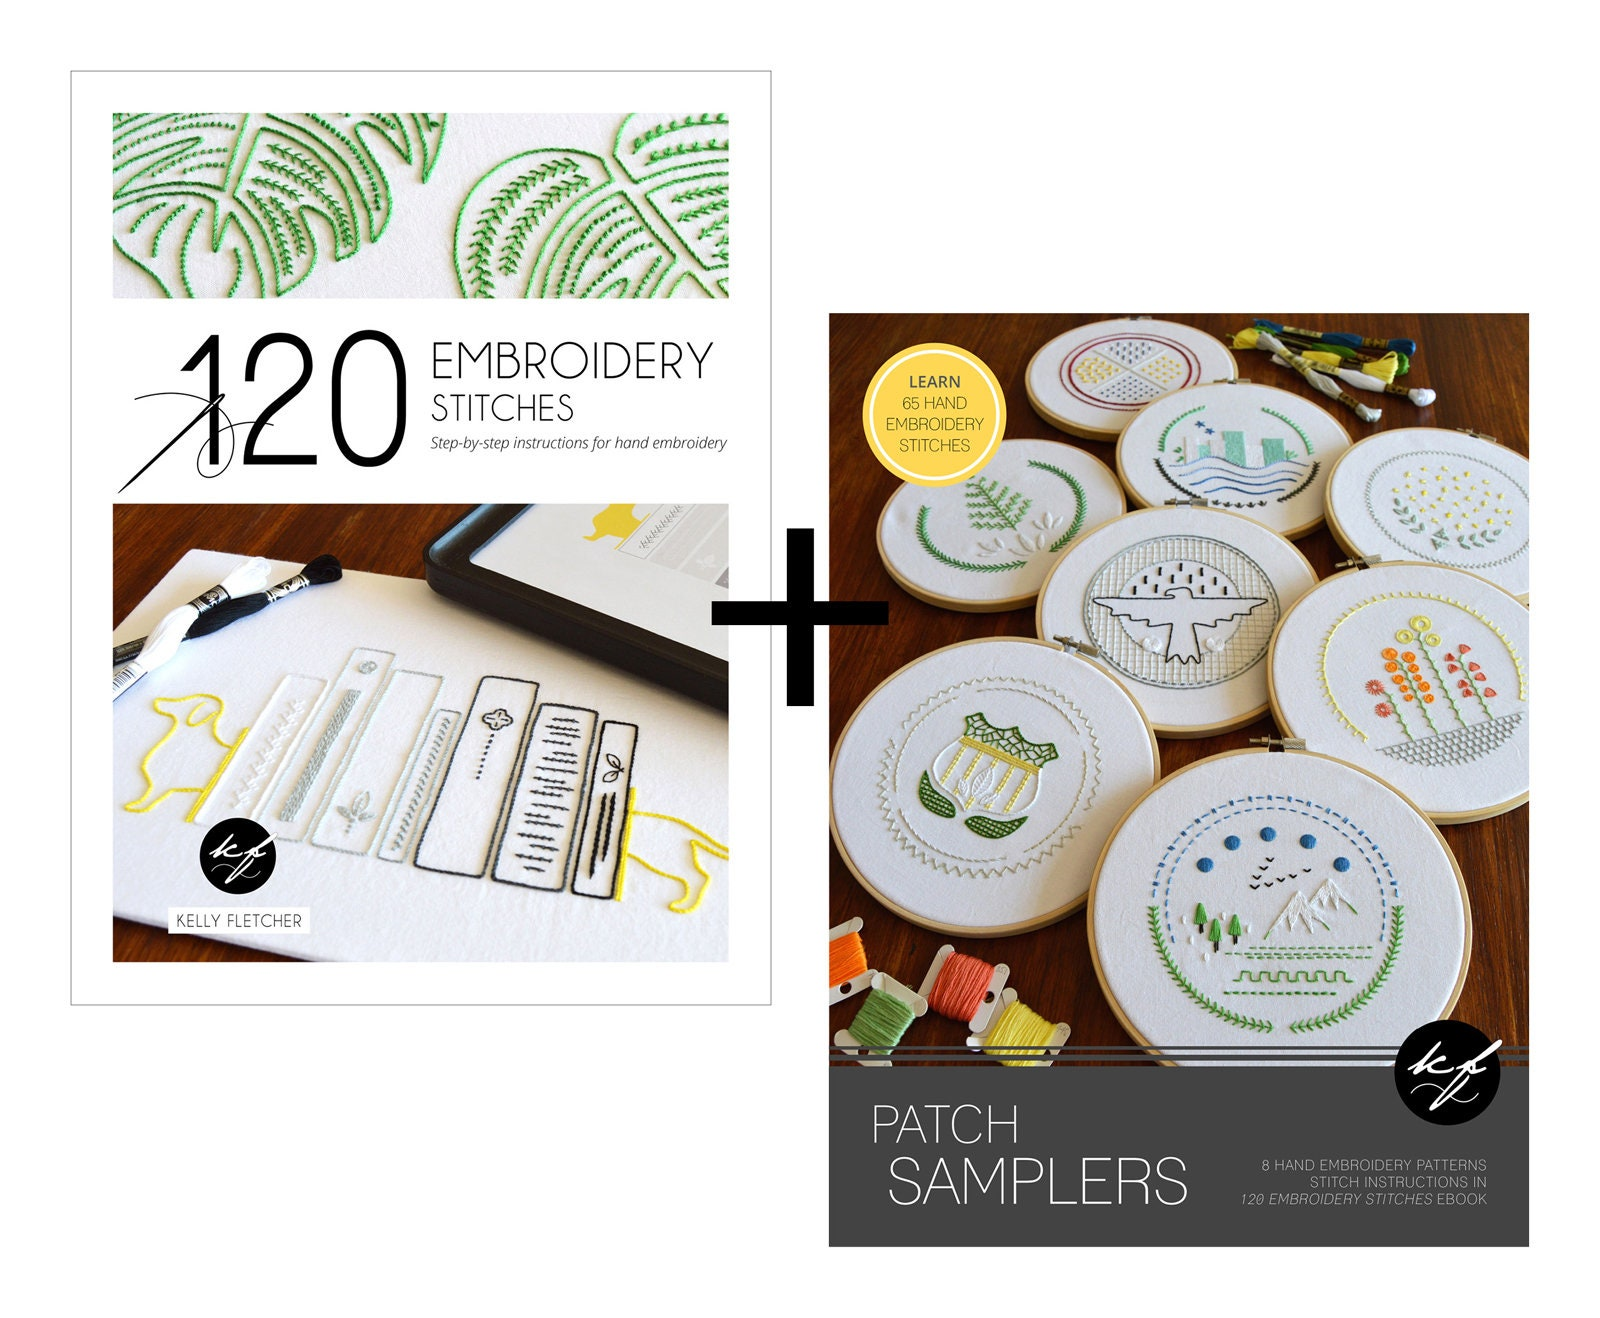 120 Embroidery Stitches Ebook Patch Samplers Pattern Hand Etsy